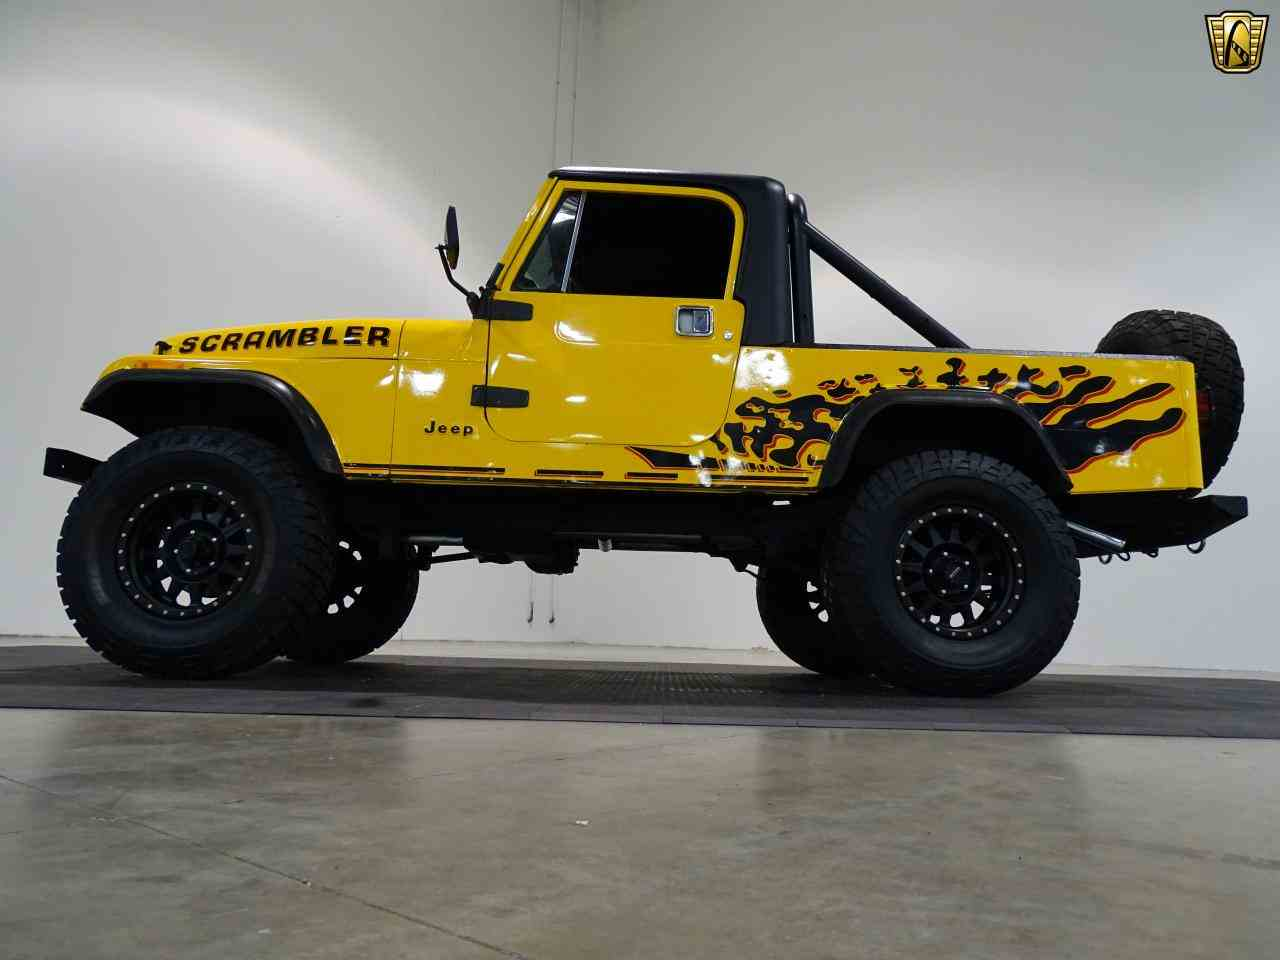 Large Picture of 1985 CJ8 Scrambler located in Texas - $32,595.00 Offered by Gateway Classic Cars - Houston - KEST